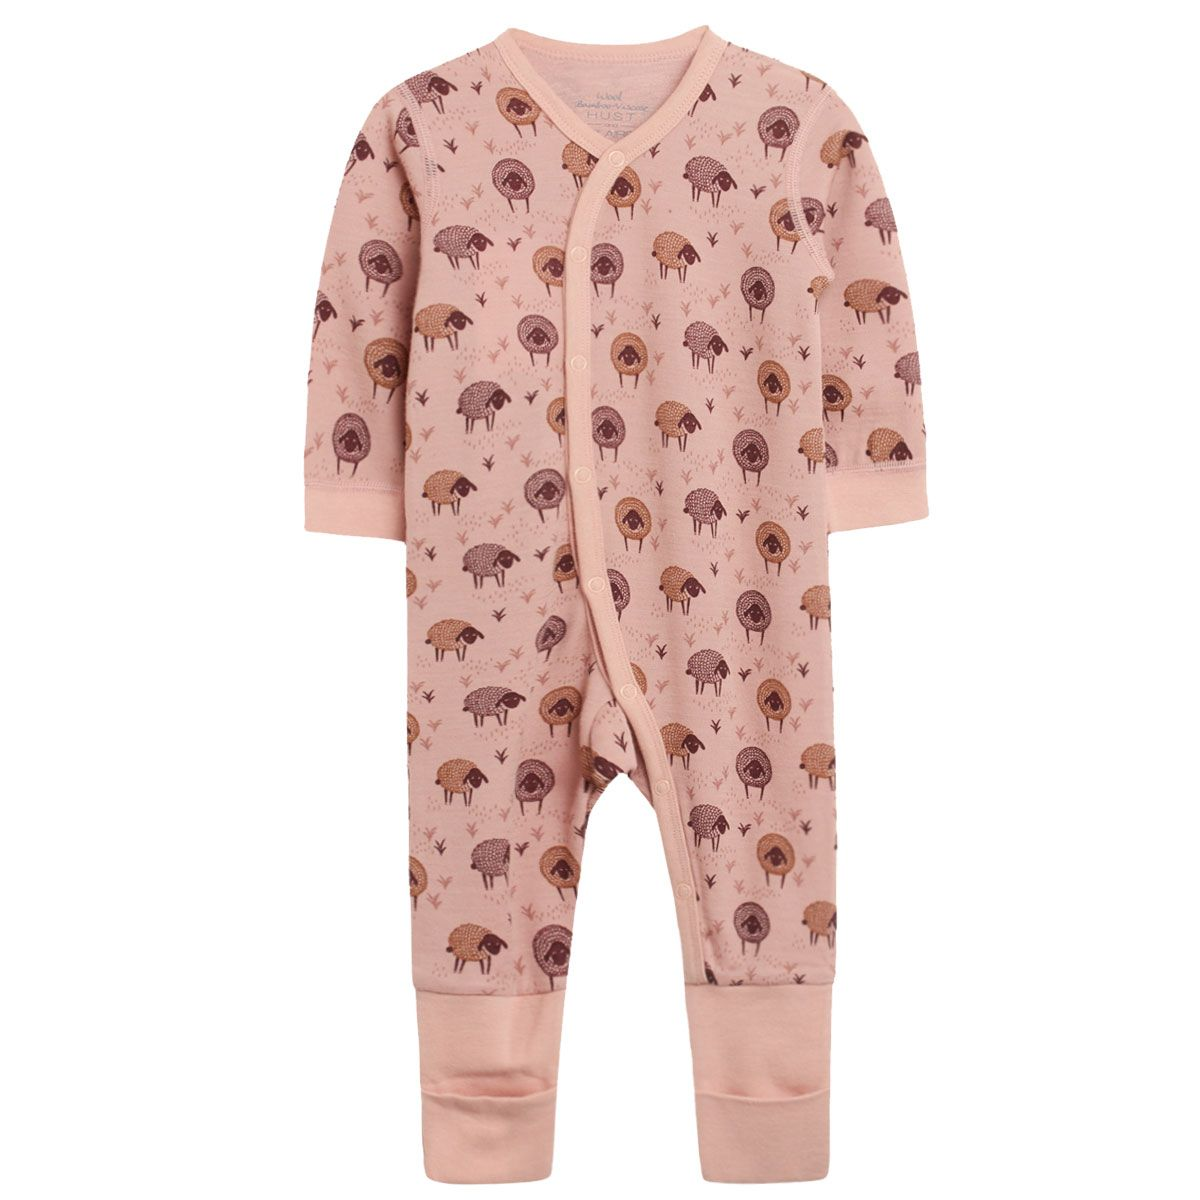 Hust and Claire - AW 20 Heldress Manu med lam, ull/bambus, desert red